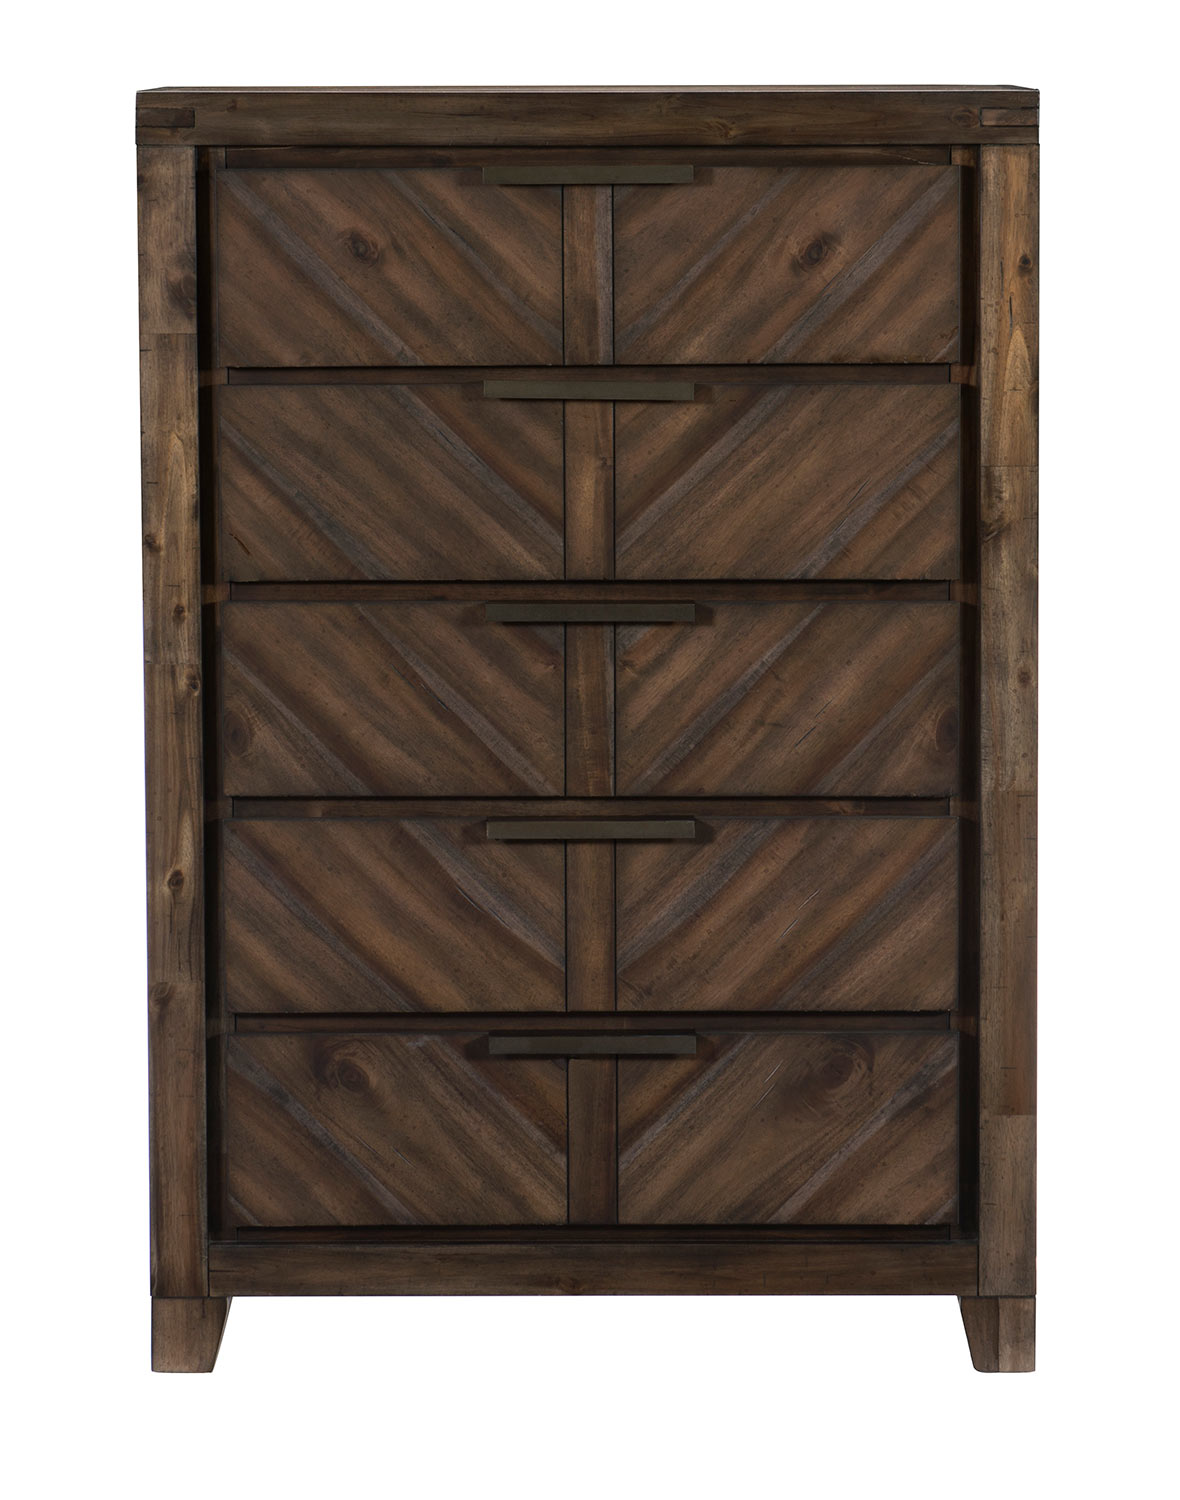 Homelegance Parnell Chest - Rustic Cherry